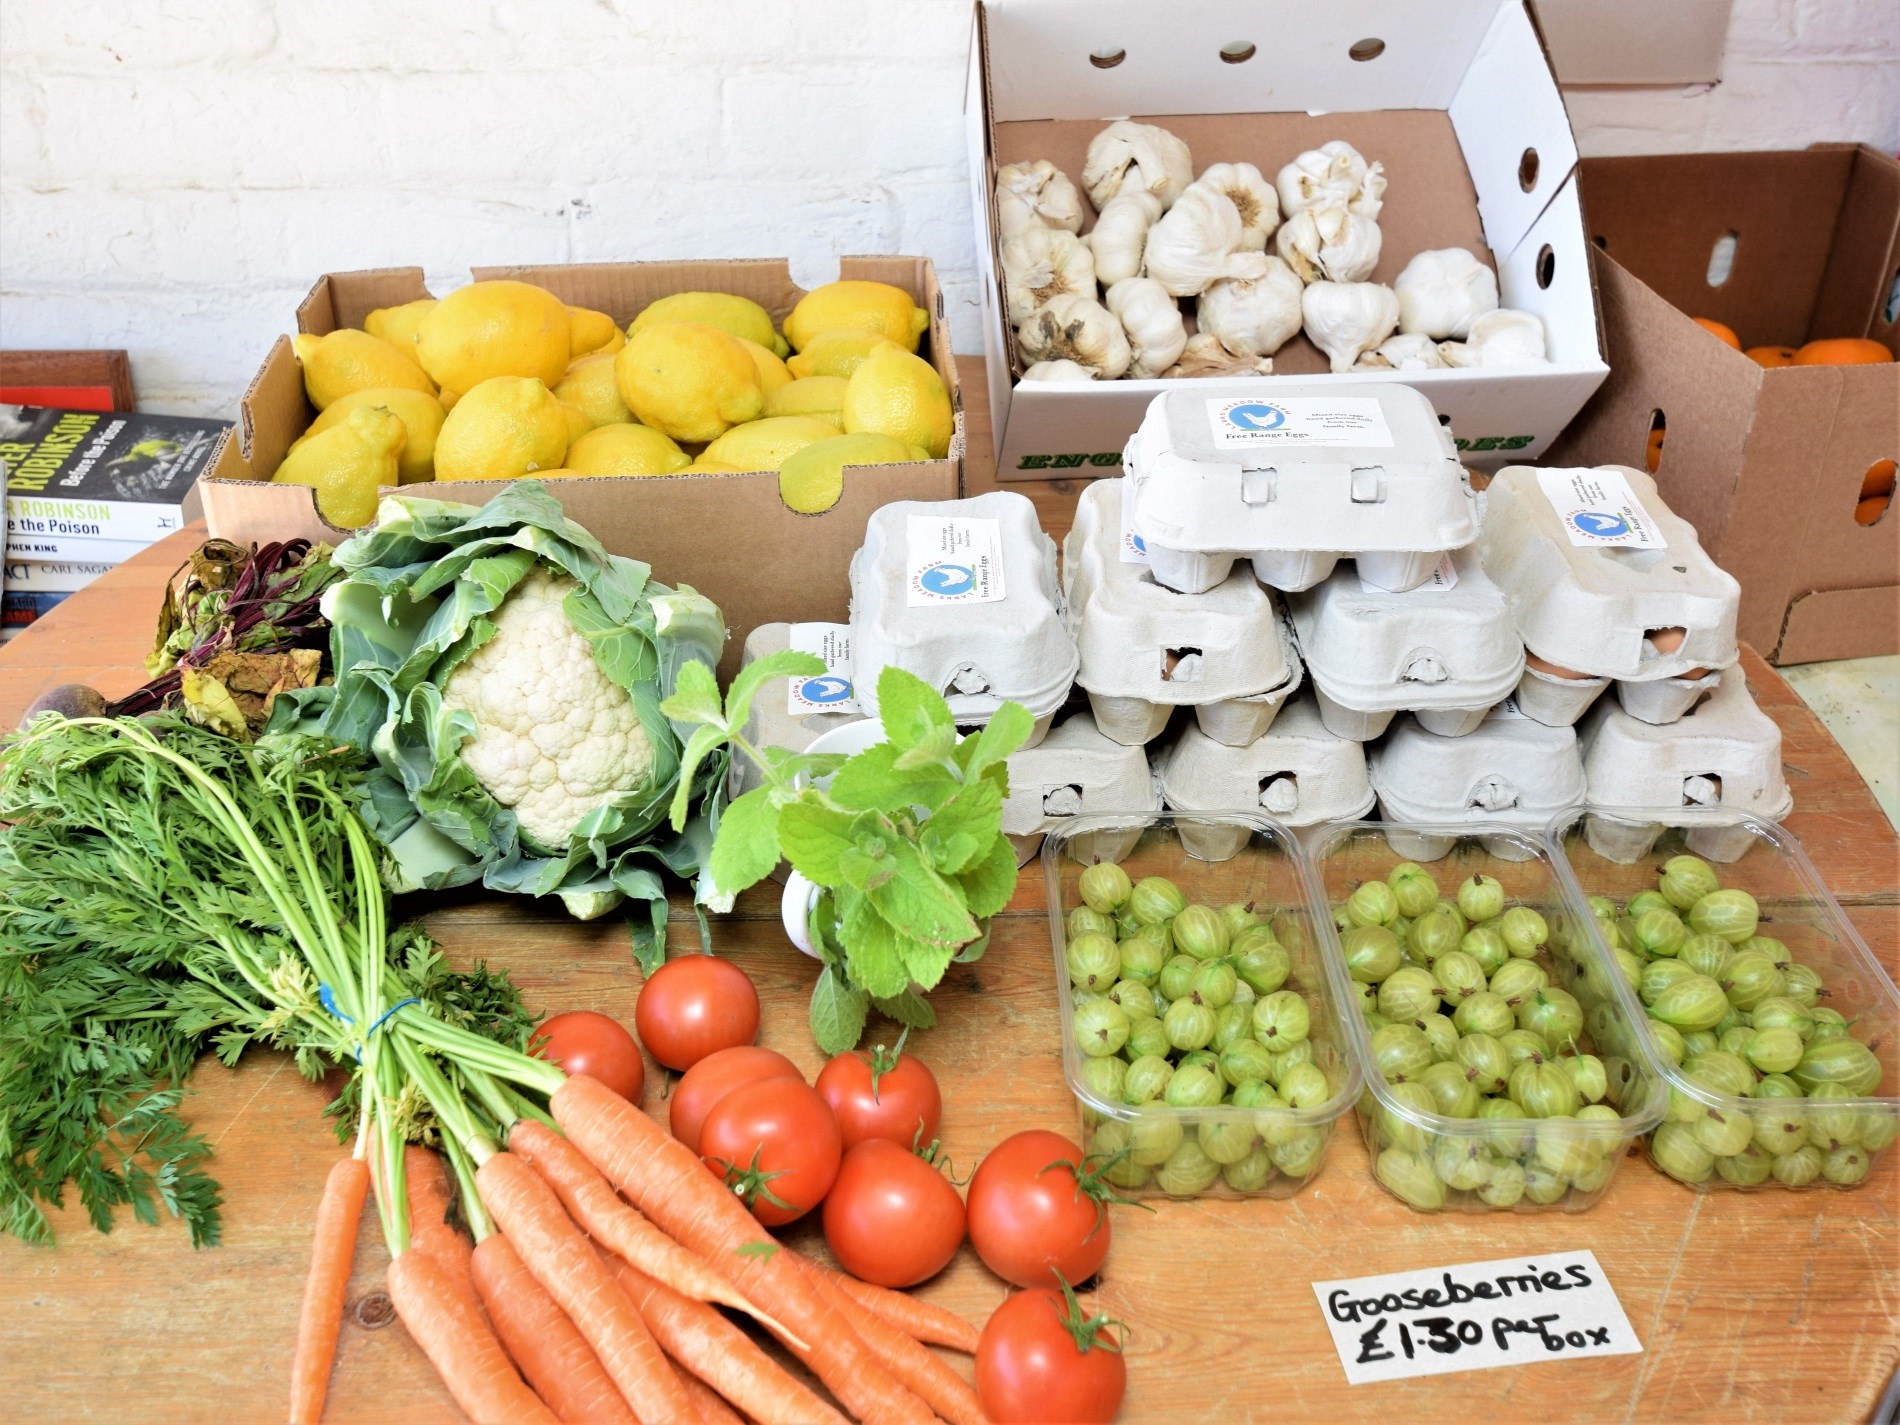 Visit the farm shop for all the local produce